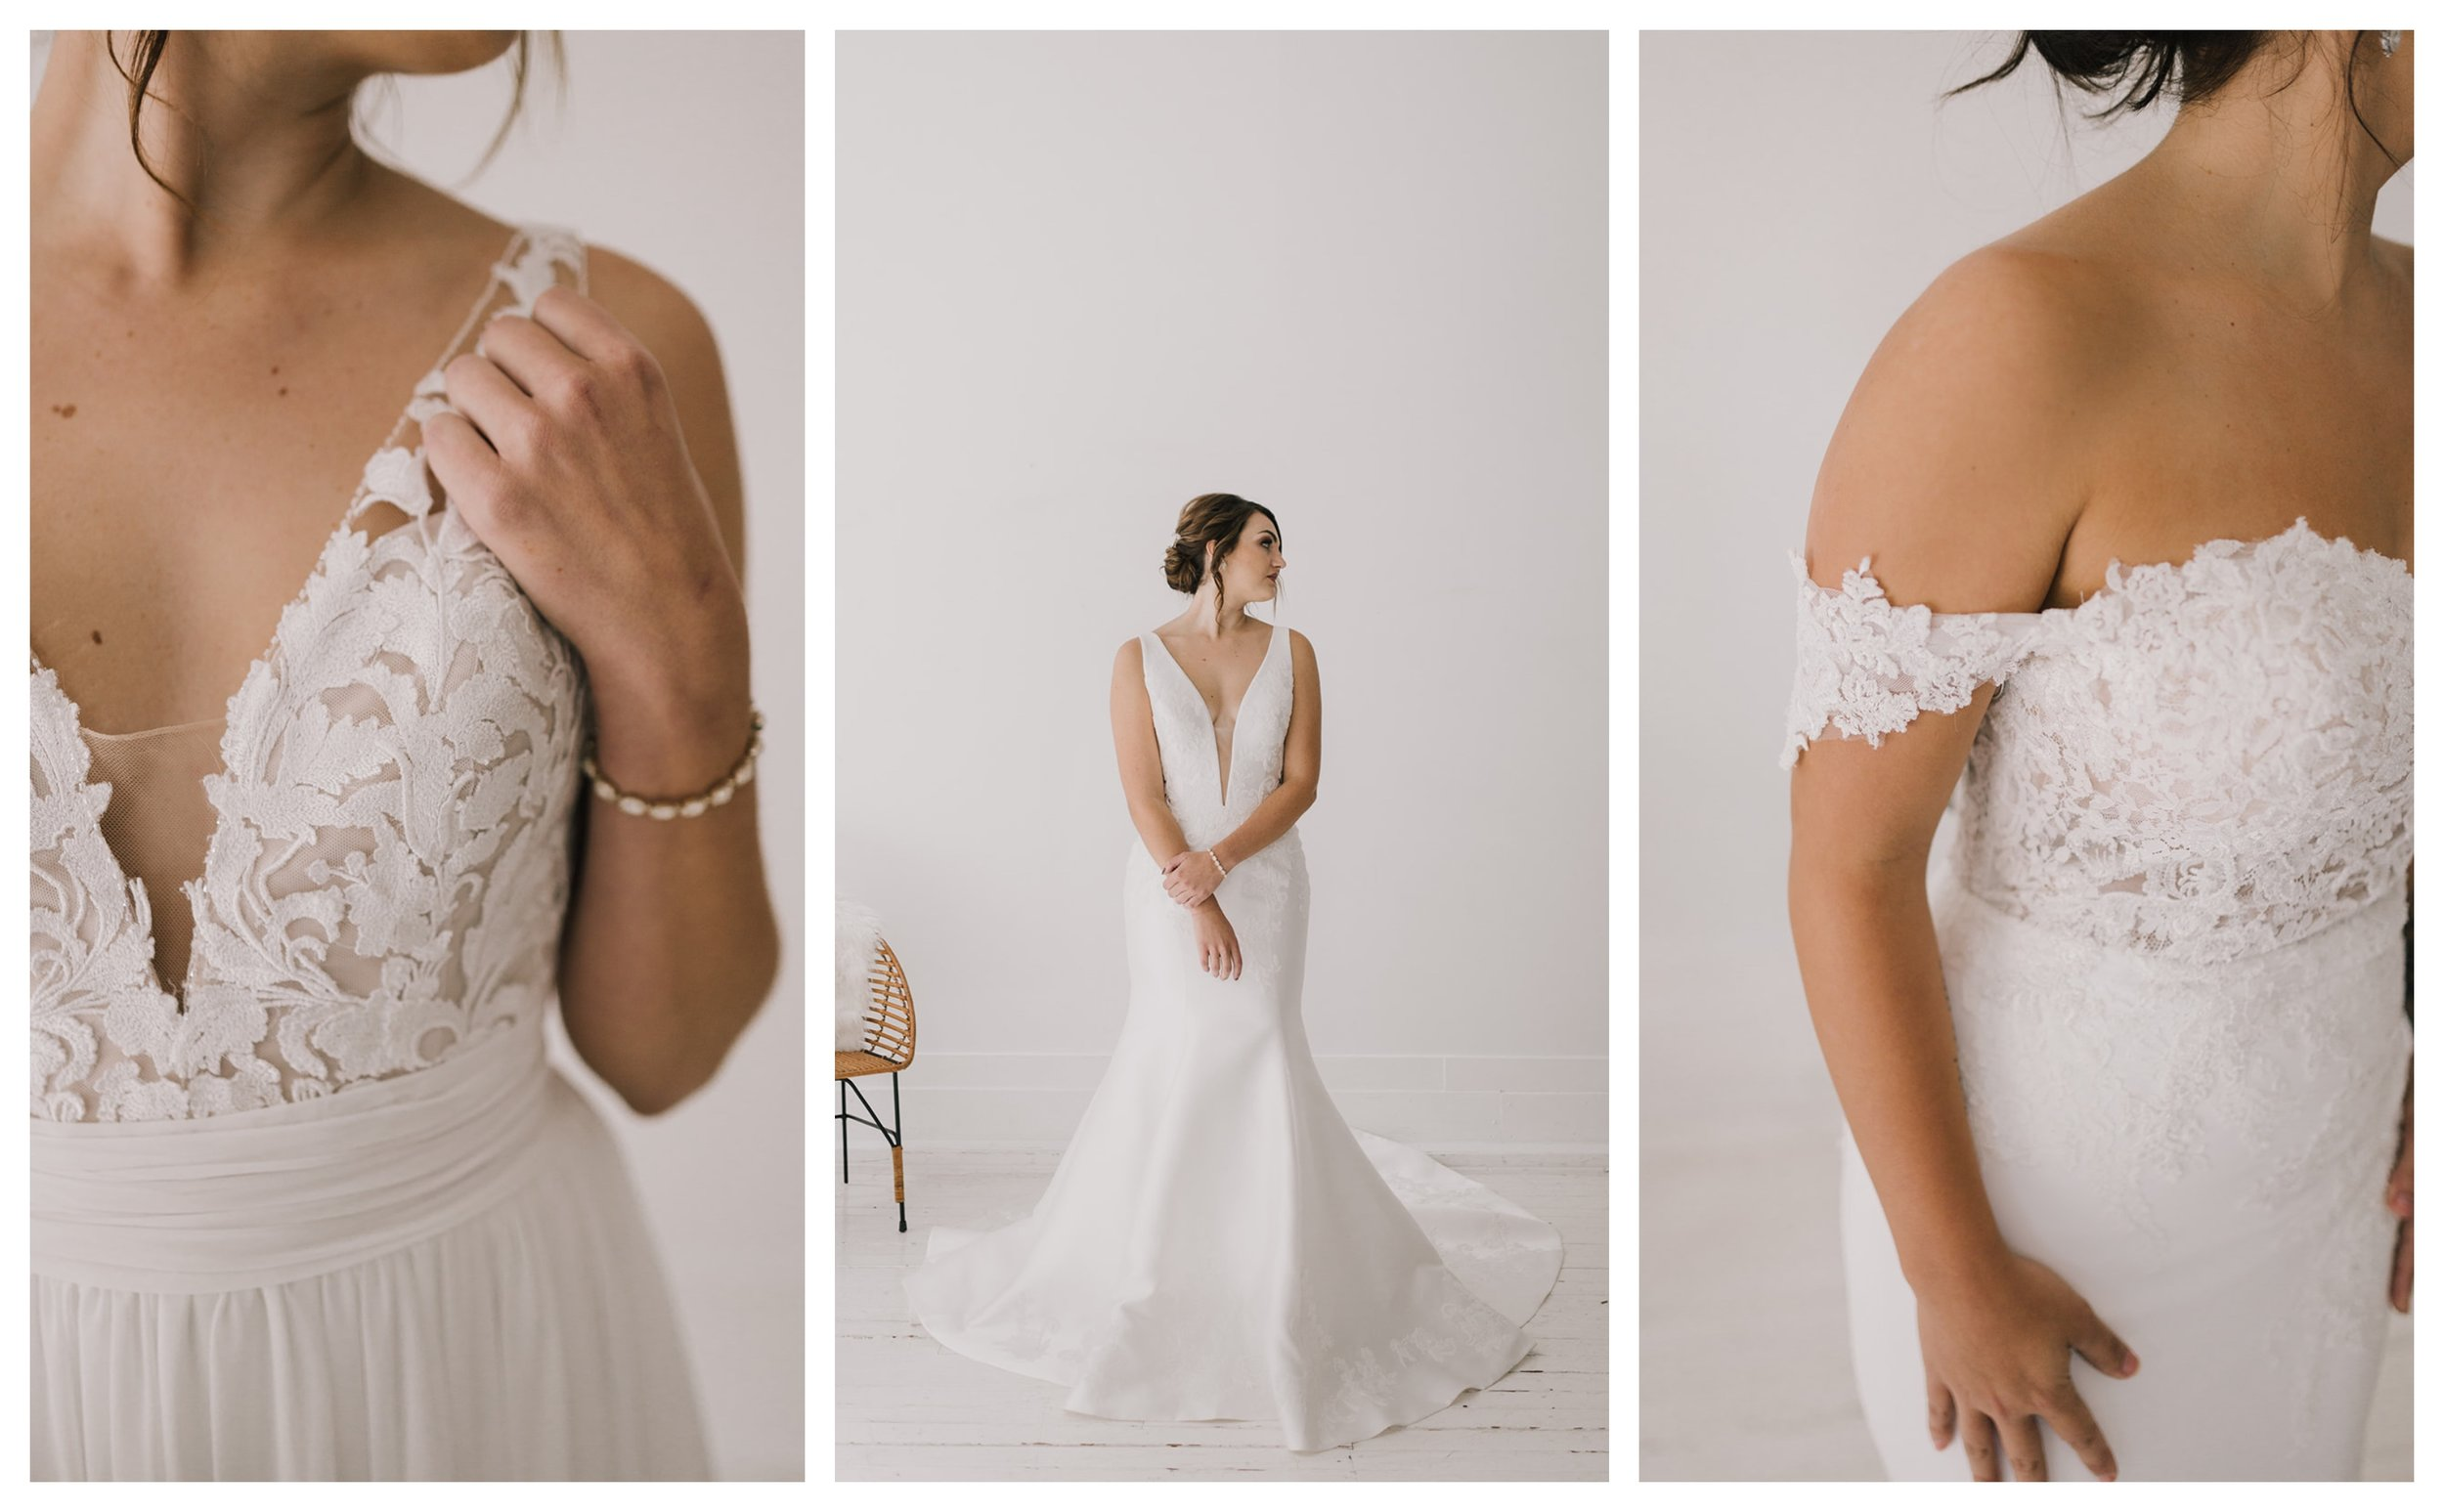 Photography:  Alyssa Barletter Photography  // Gowns:  La Sposa  +  Blue by Enzoani